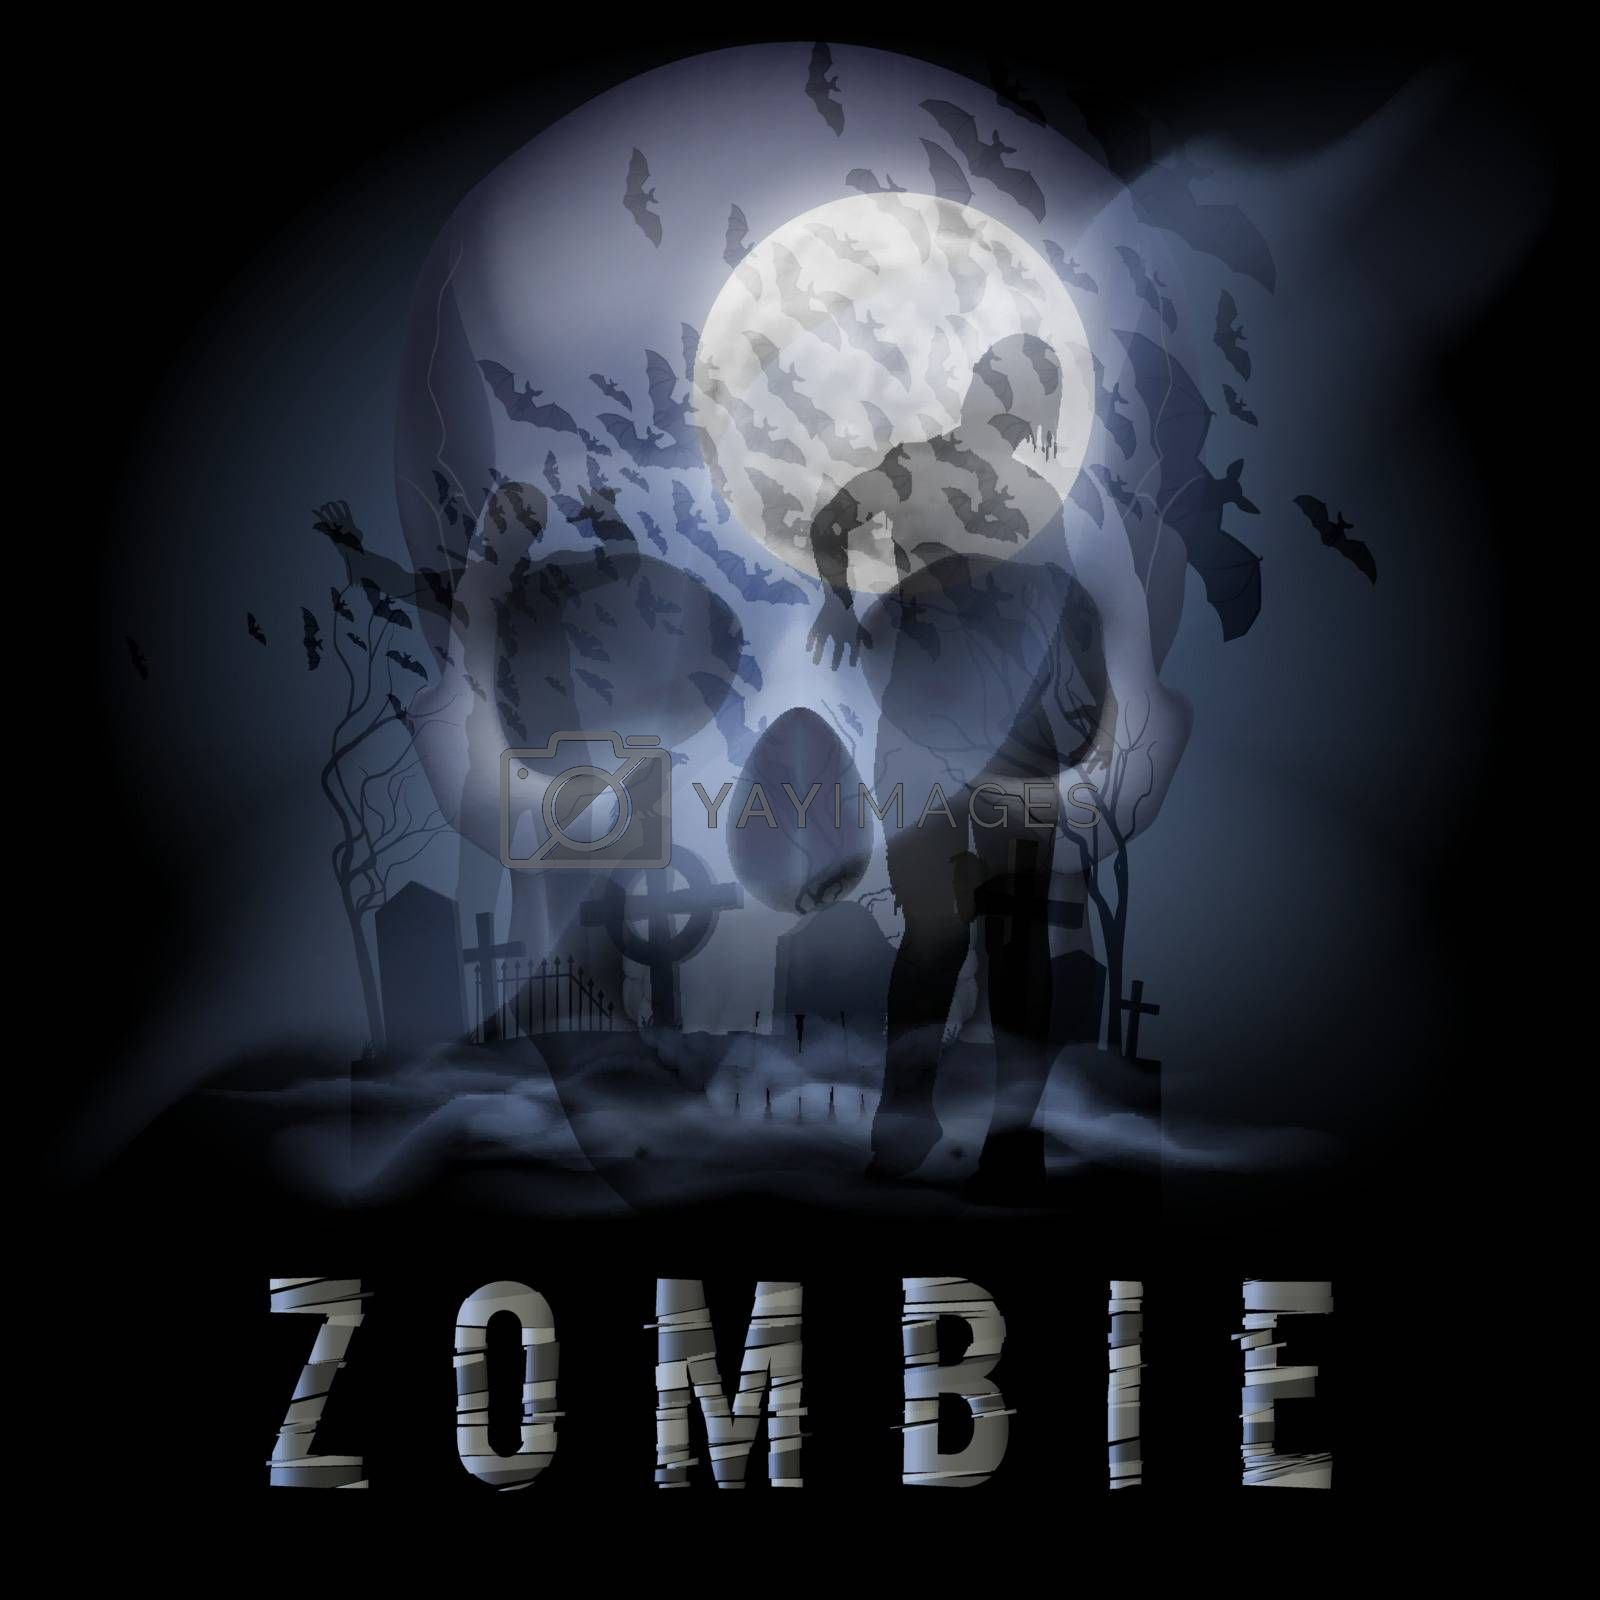 Halloween Background with Skull, Zombie on a Full Moon